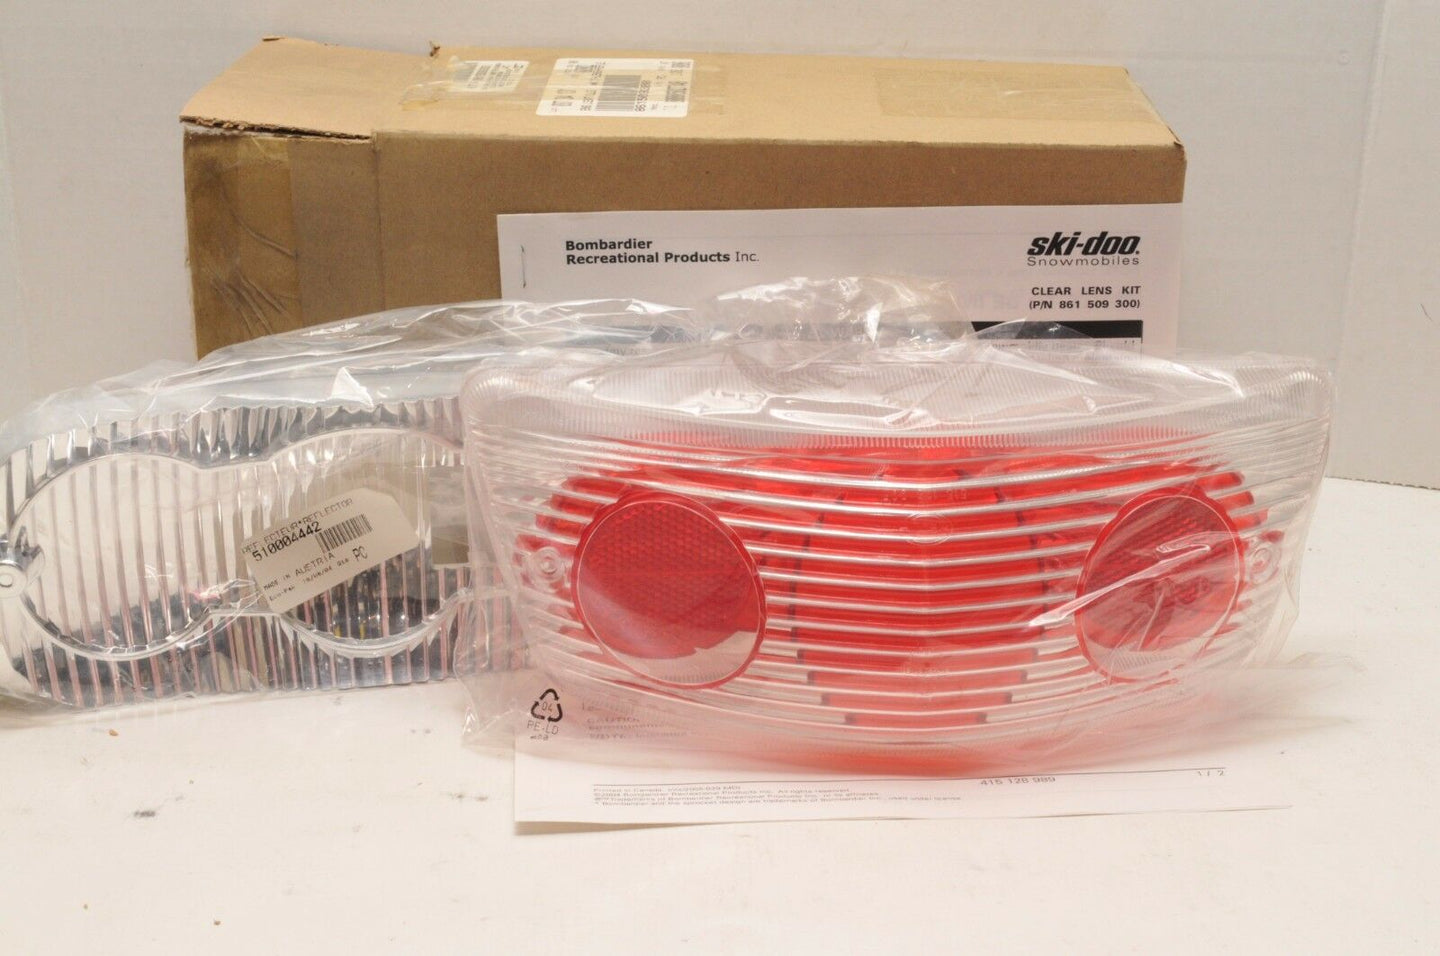 NEW NOS SKIDOO CLEAR TAIL LIGHT TAILLIGHT BRAKE KIT 861509300 2005-08 MX Z GTX++